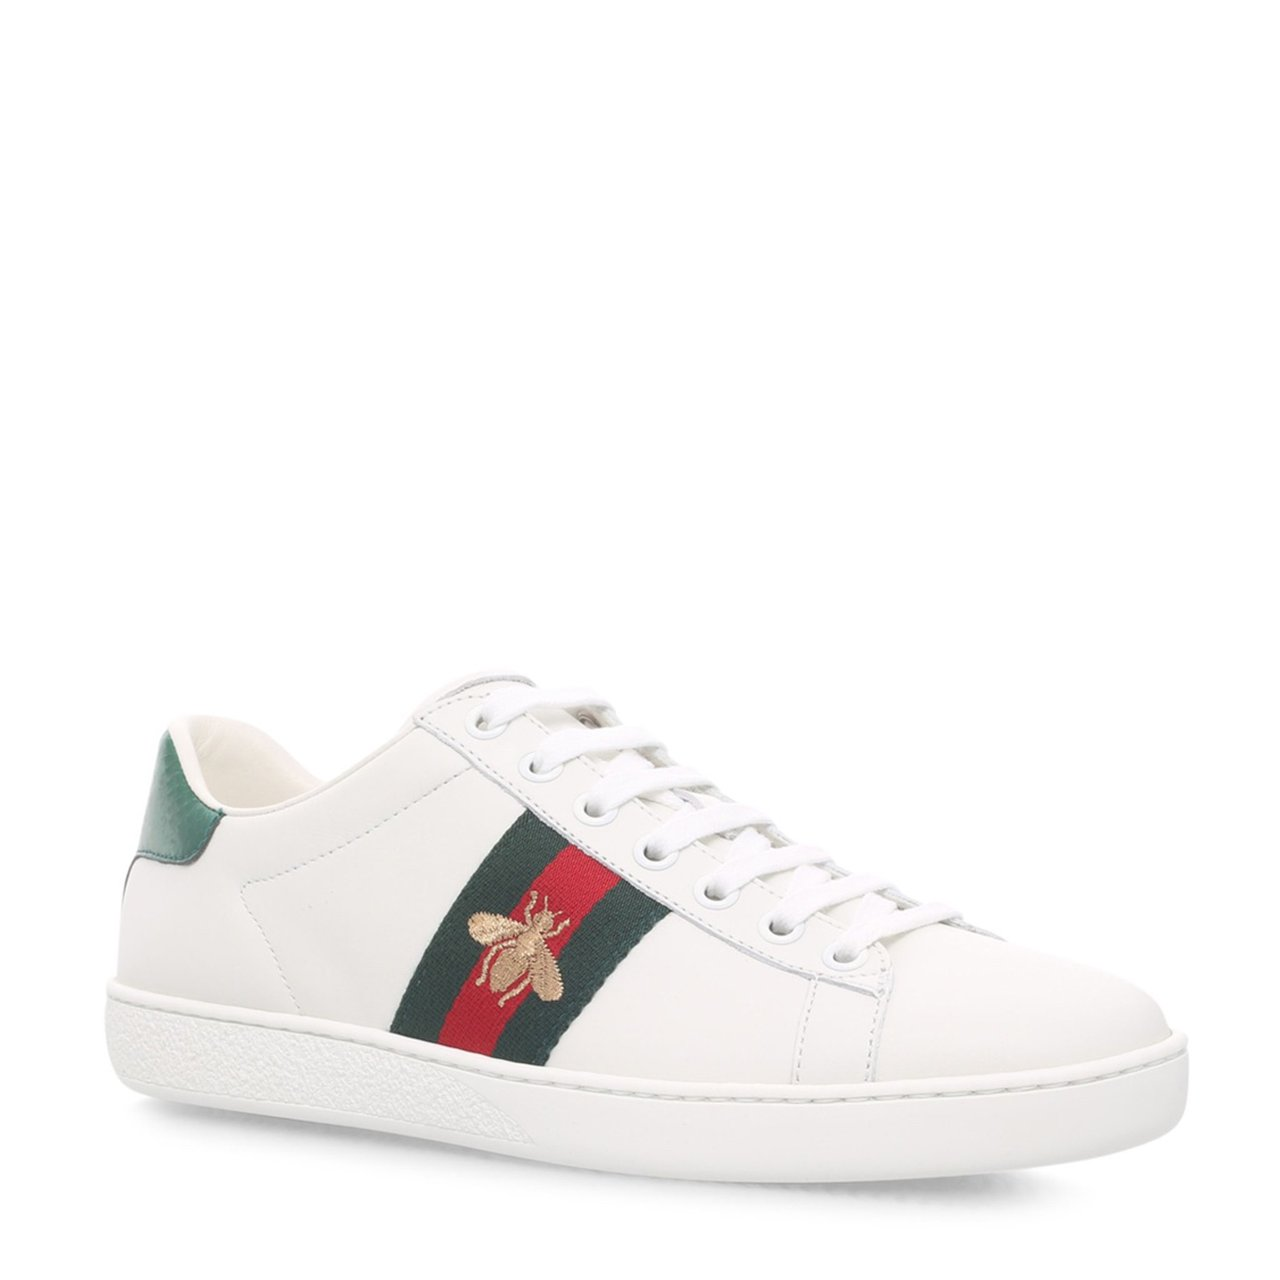 Original gucci bee trainers. SIZE 5